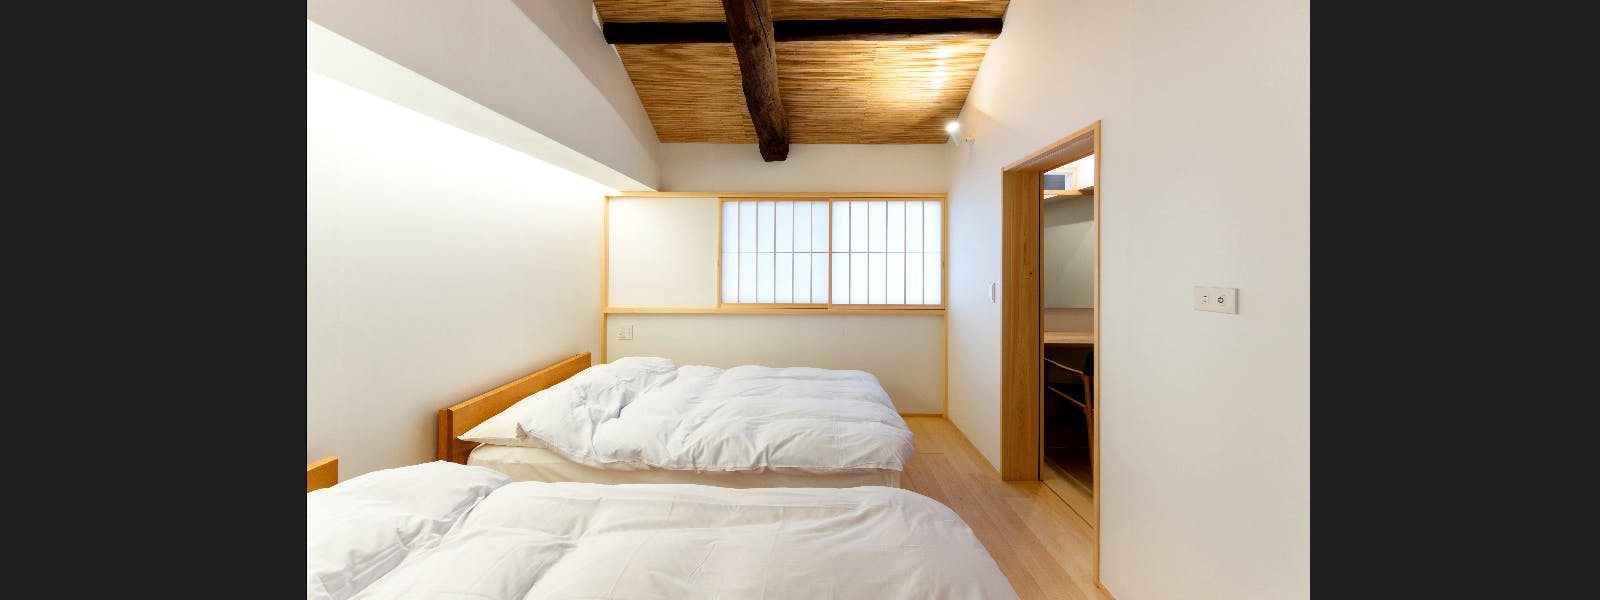 BenTen West Machiya in Kyoto - 2F Western Bedroom